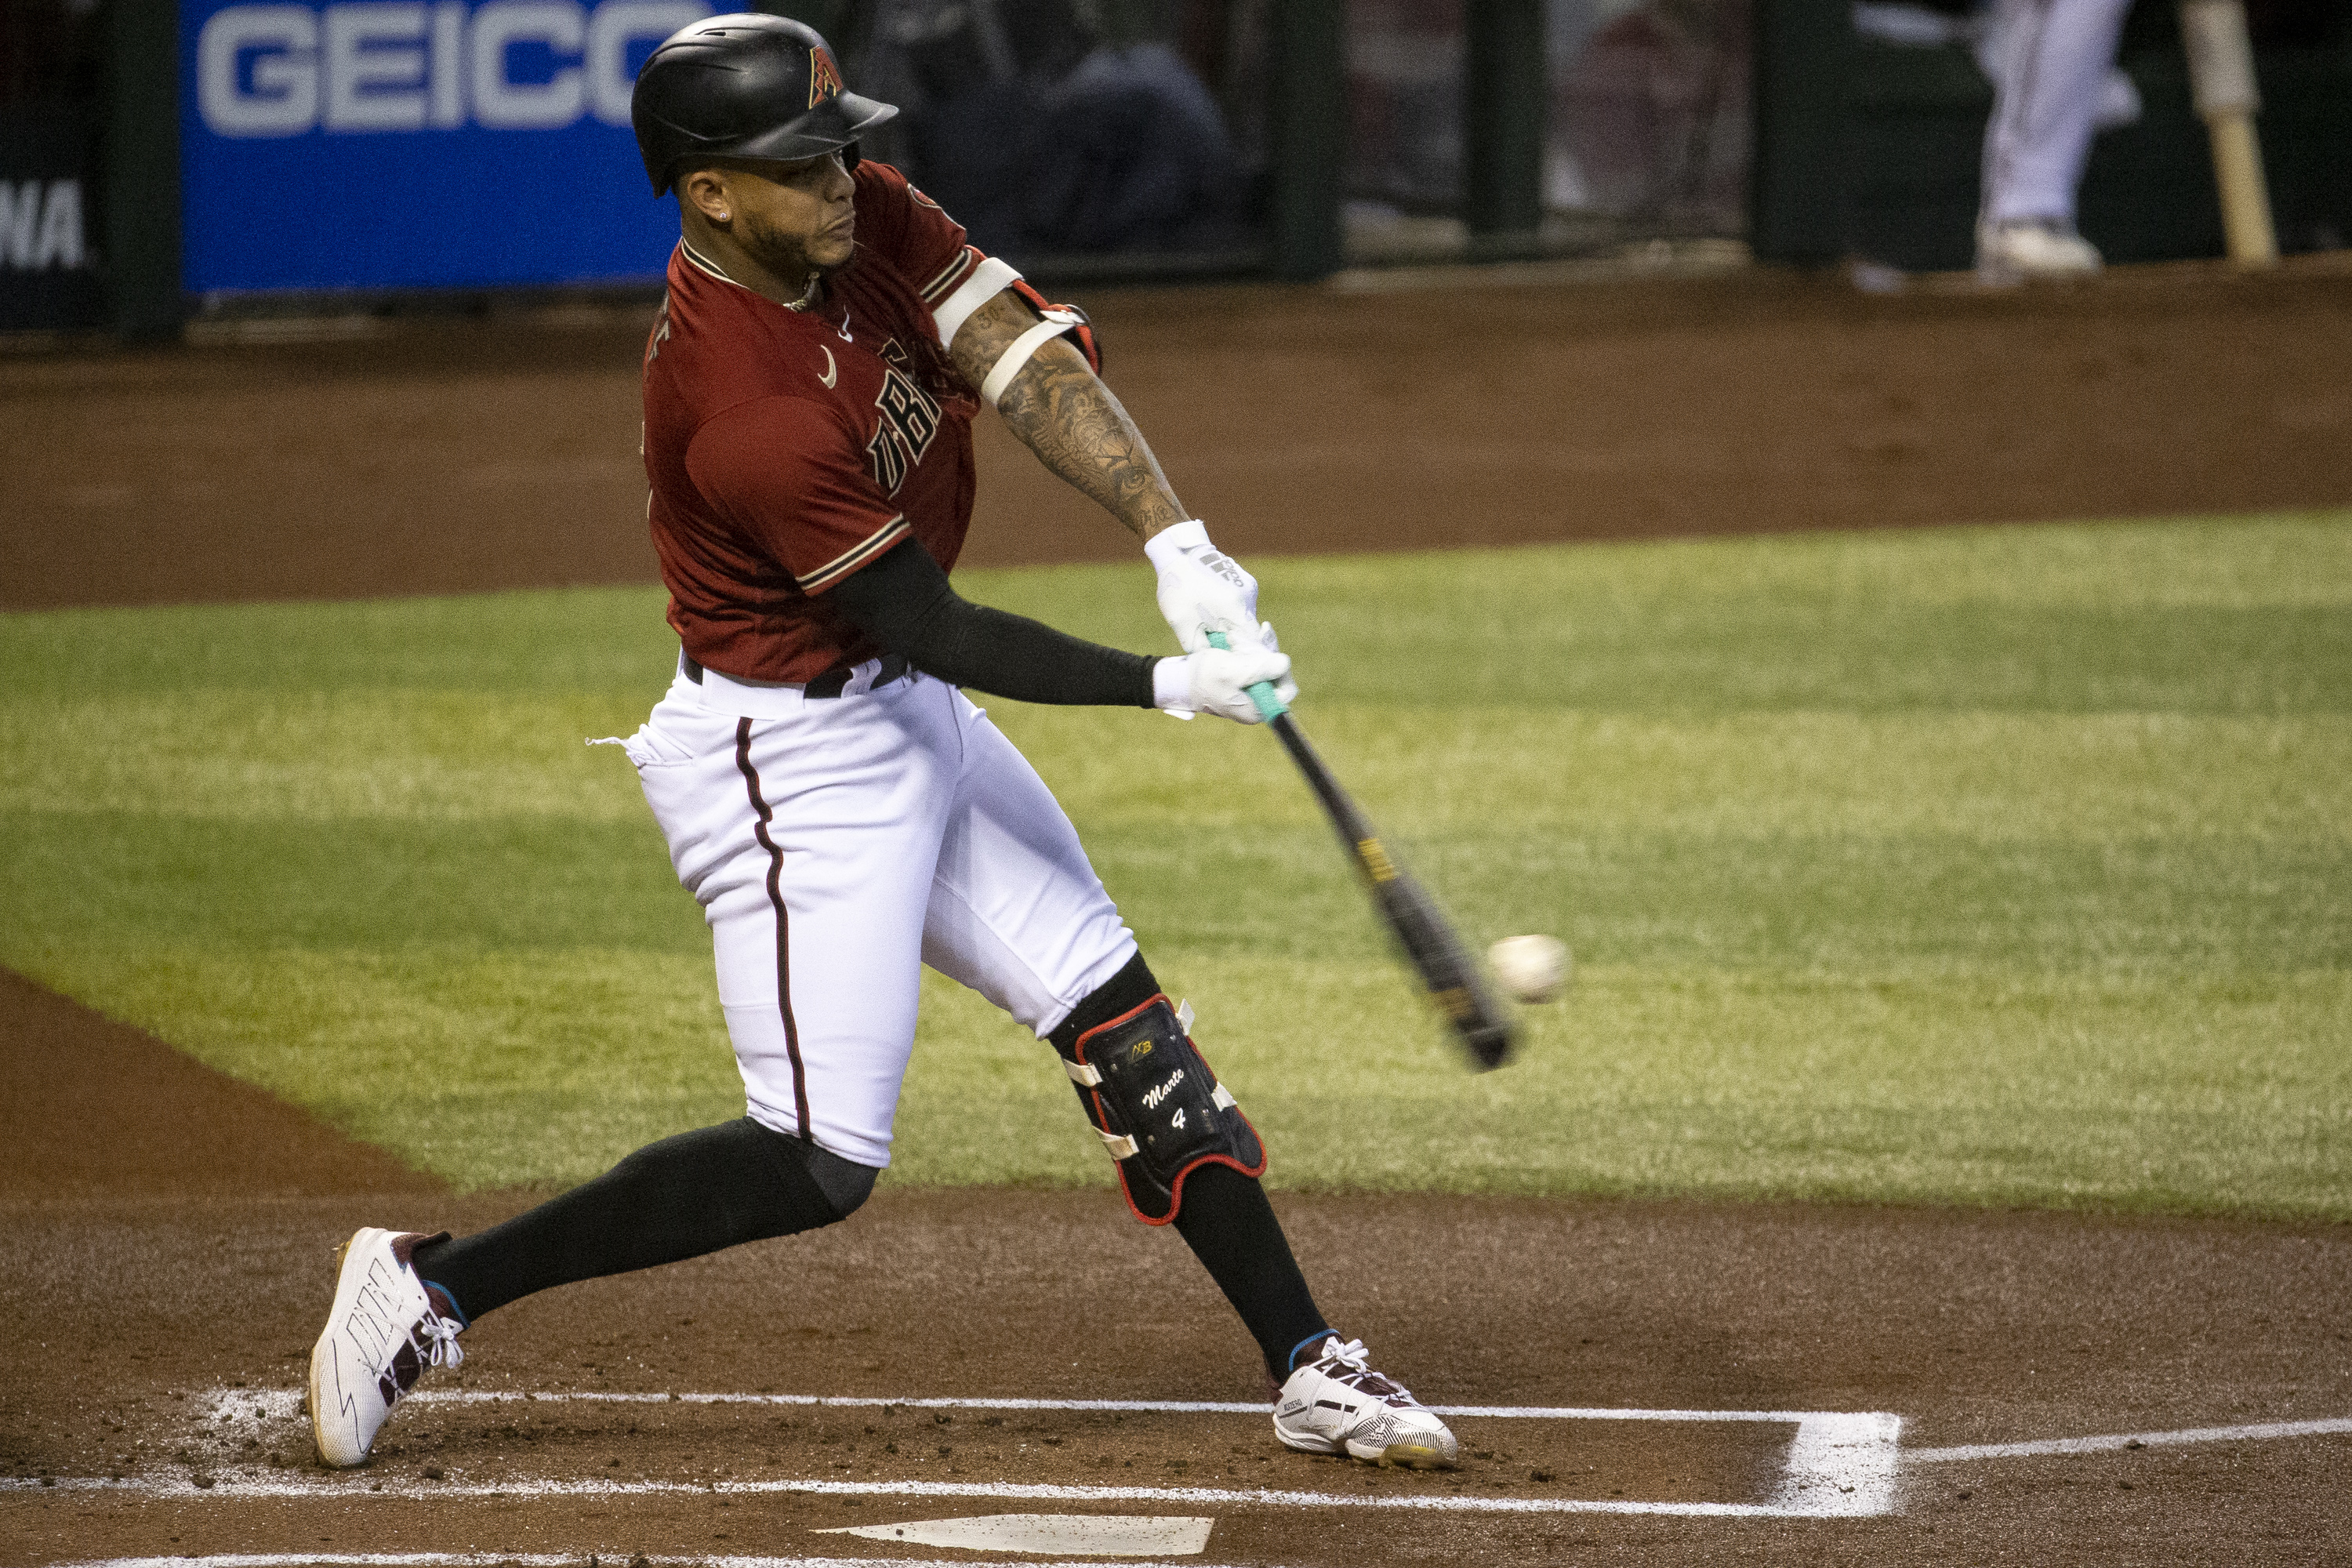 Arizona Diamondbacks player Ketel Marte (4) hits a double against the Colorado Rockies in the first inning at Chase Field.